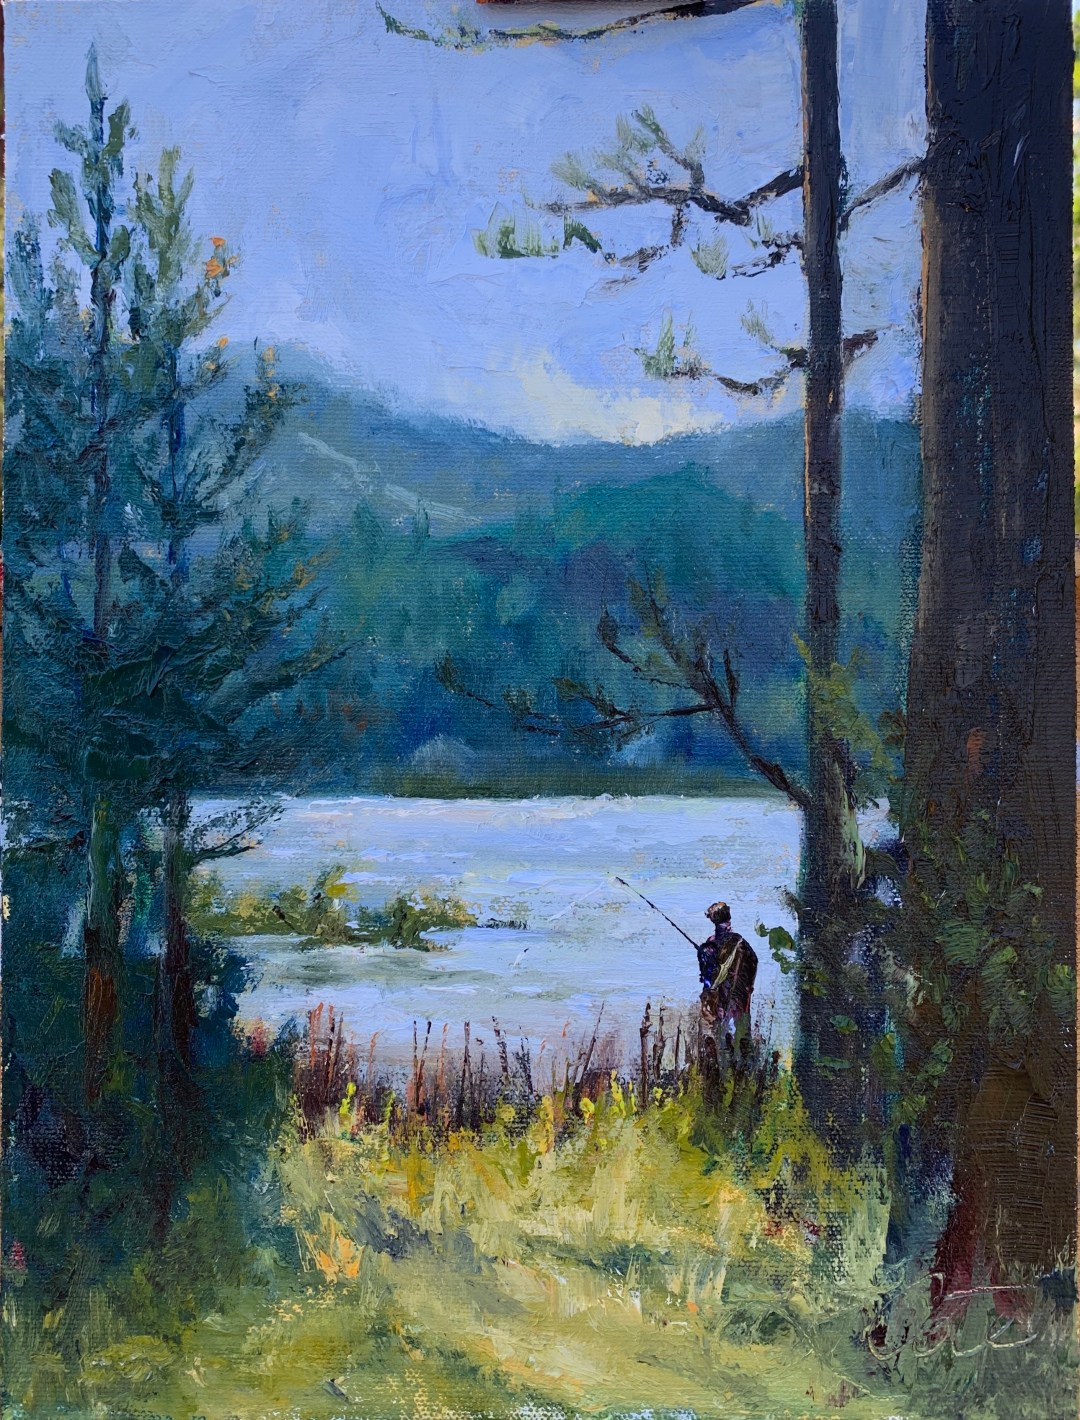 """Attached is an image of a painting I did at Bass Lake 2 weeks ago while traveling to the valley for my husband's work. I've been struggling to pick up my brushes while sheltering at home, but a little opportunity to do some plein air work restored my creativity. Thank you for providing a virtual gallery to support local SLO artists. """"The Early Bird"""" Oil on linen (Raymar archival panel) 9*12 by Lorraine Cote"""